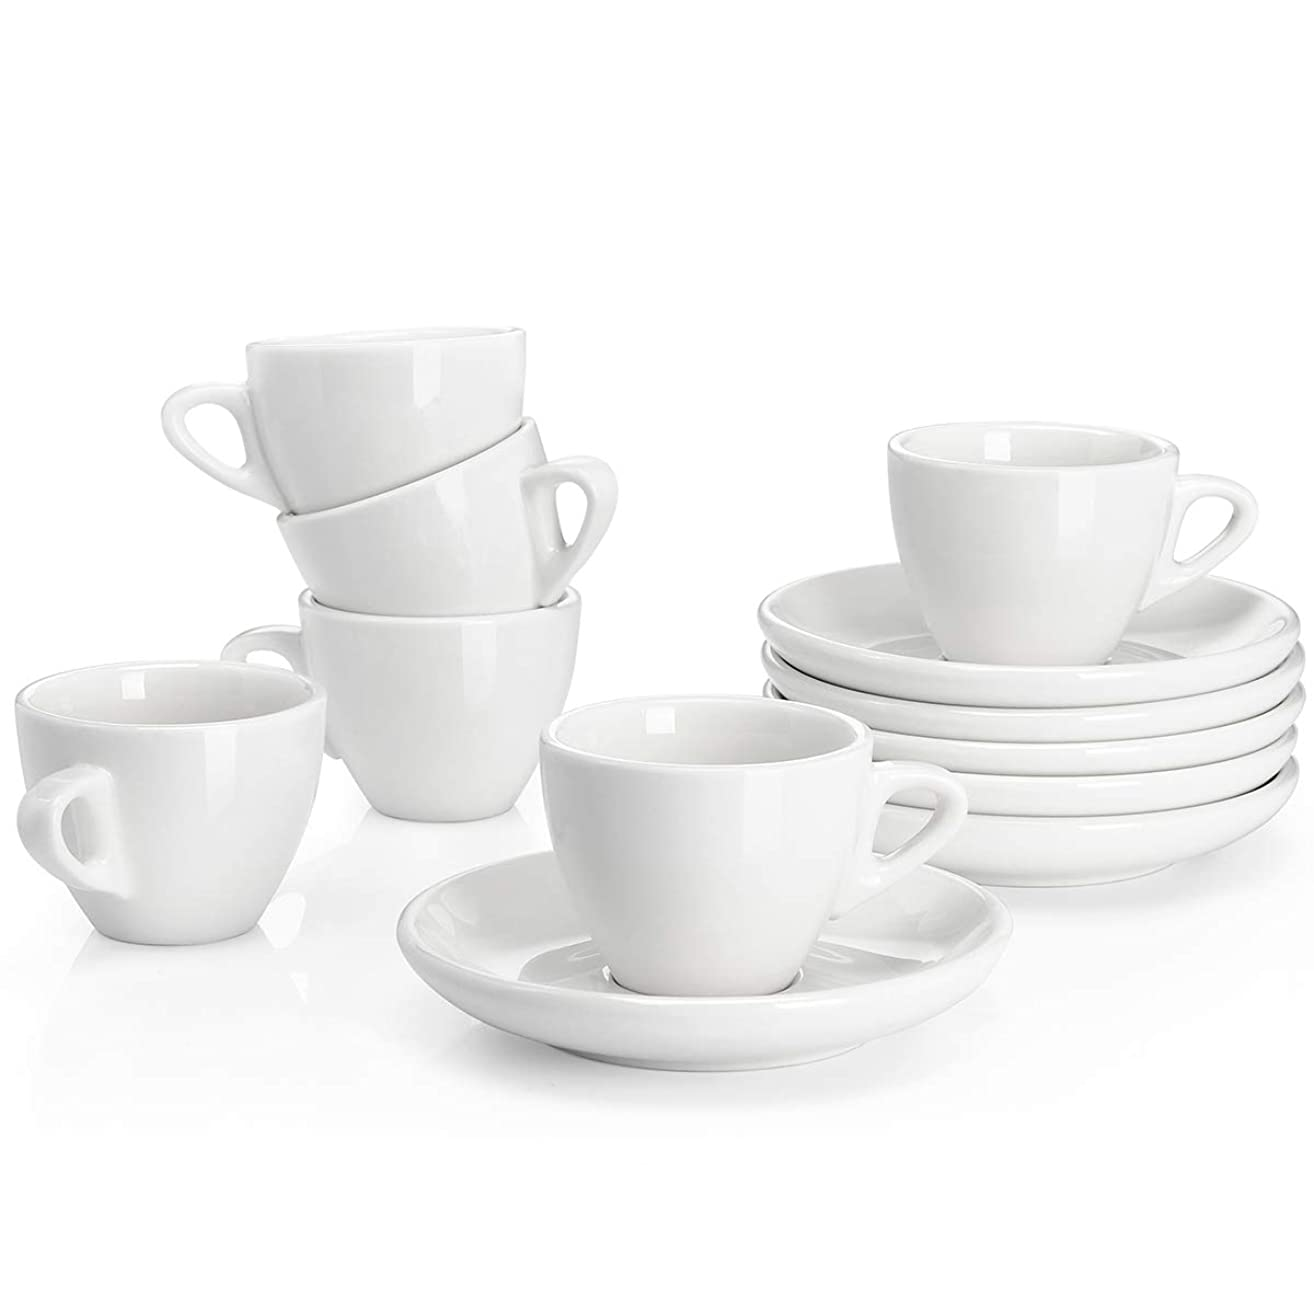 Sweese 4304 Porcelain Espresso Cups with Saucers - 2 Ounce - Set of 6, White